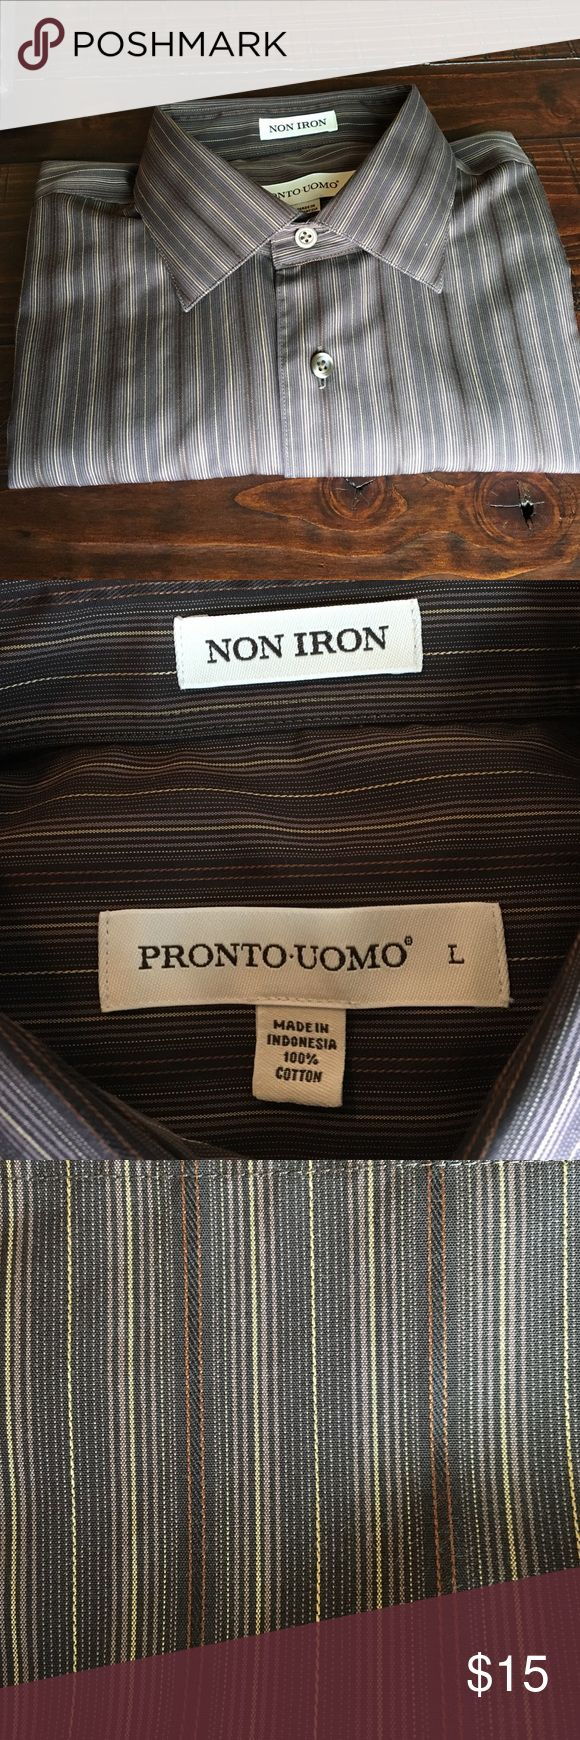 Pronto Uomo Brown stripe Non iron dress shirt Pronto Uomo Brown stripe Non iron long sleeve dress shirt. This brown striped shirt with a modern fit features a non-iron treatment that defies wrinkles for a crisp, flawless look all day.  Non-iron 100% cotton Spread collar Non-breakable buttons Modern Fit Machine Washable, clean smoke/animal free home pronto uomo Shirts Dress Shirts